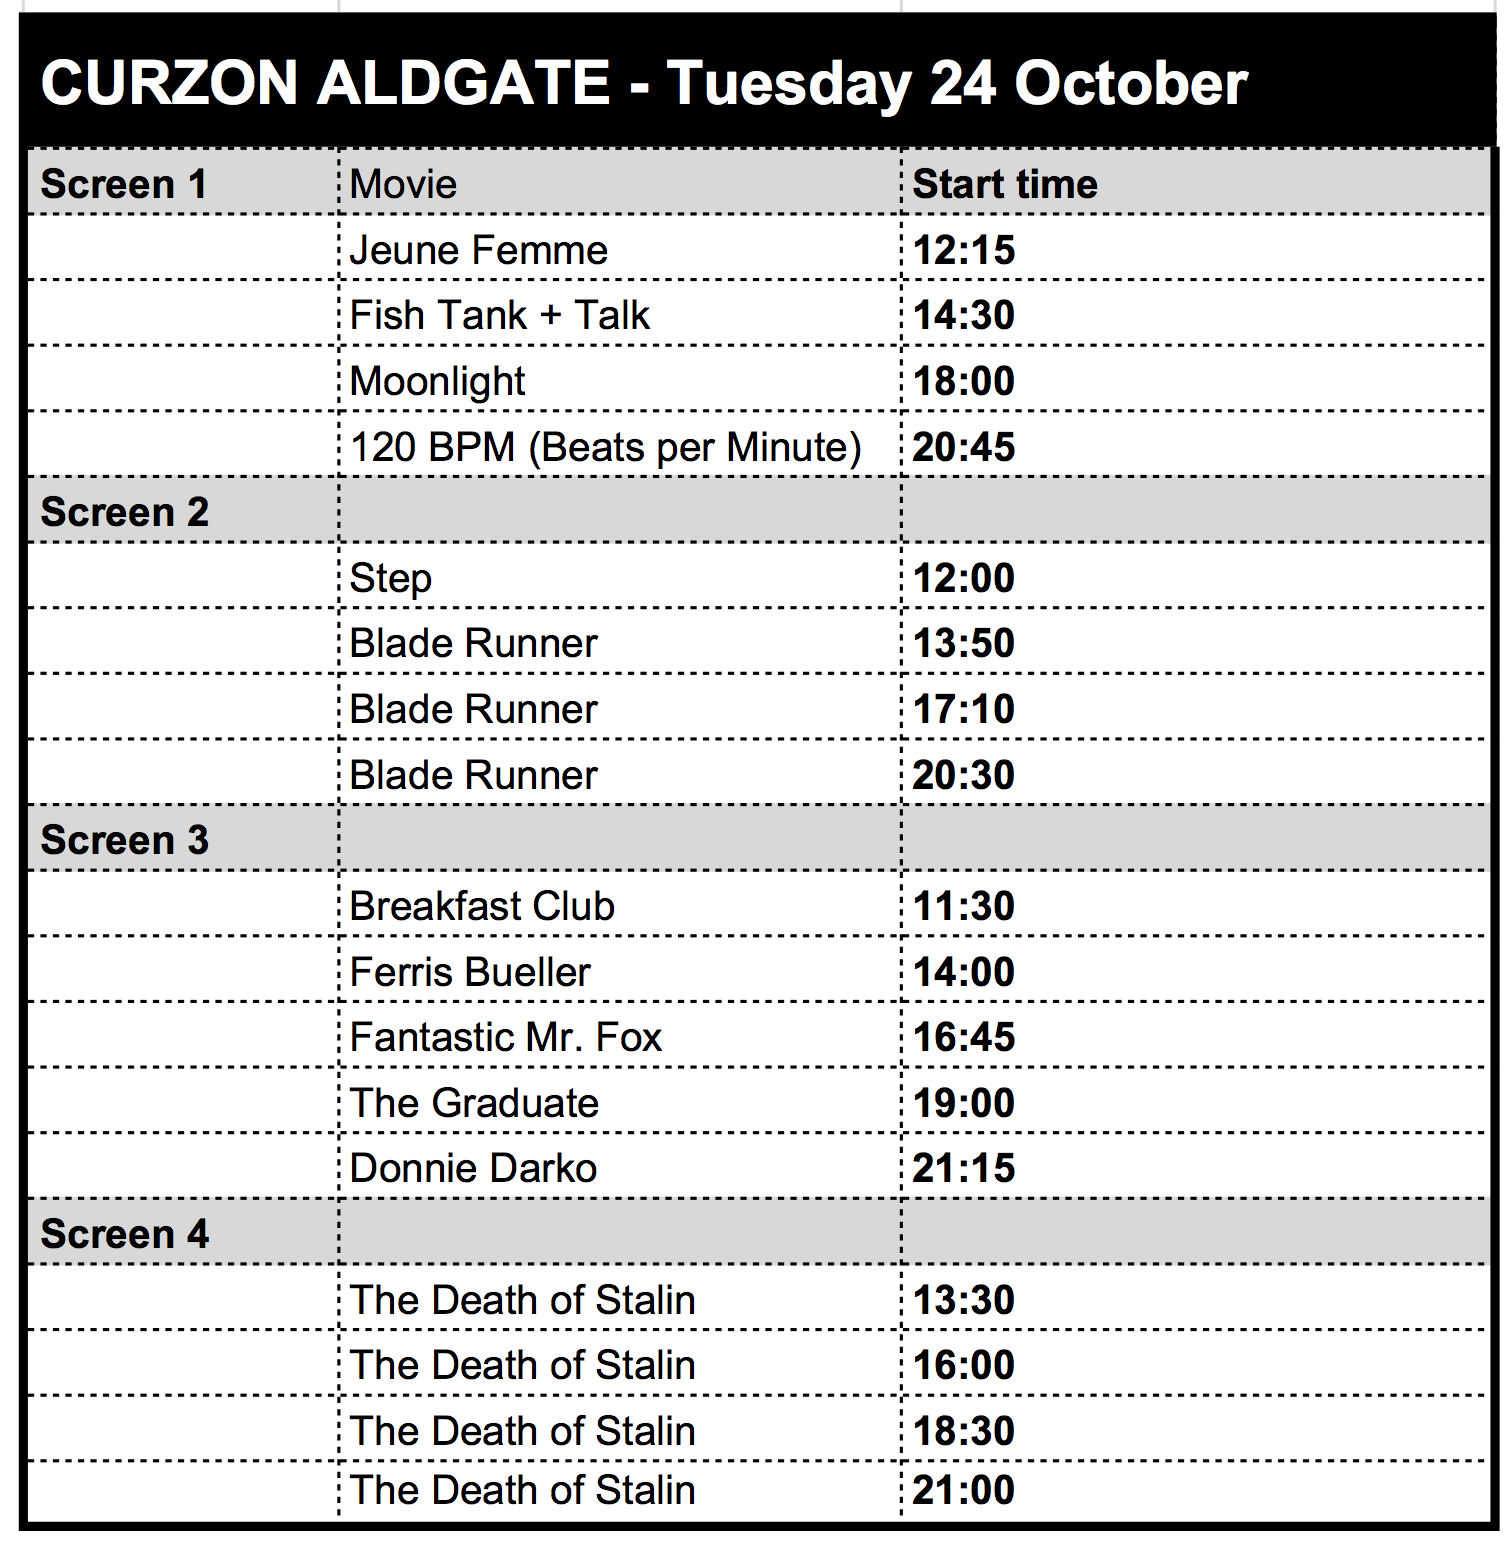 Meet the World - Aldgate schedule.png